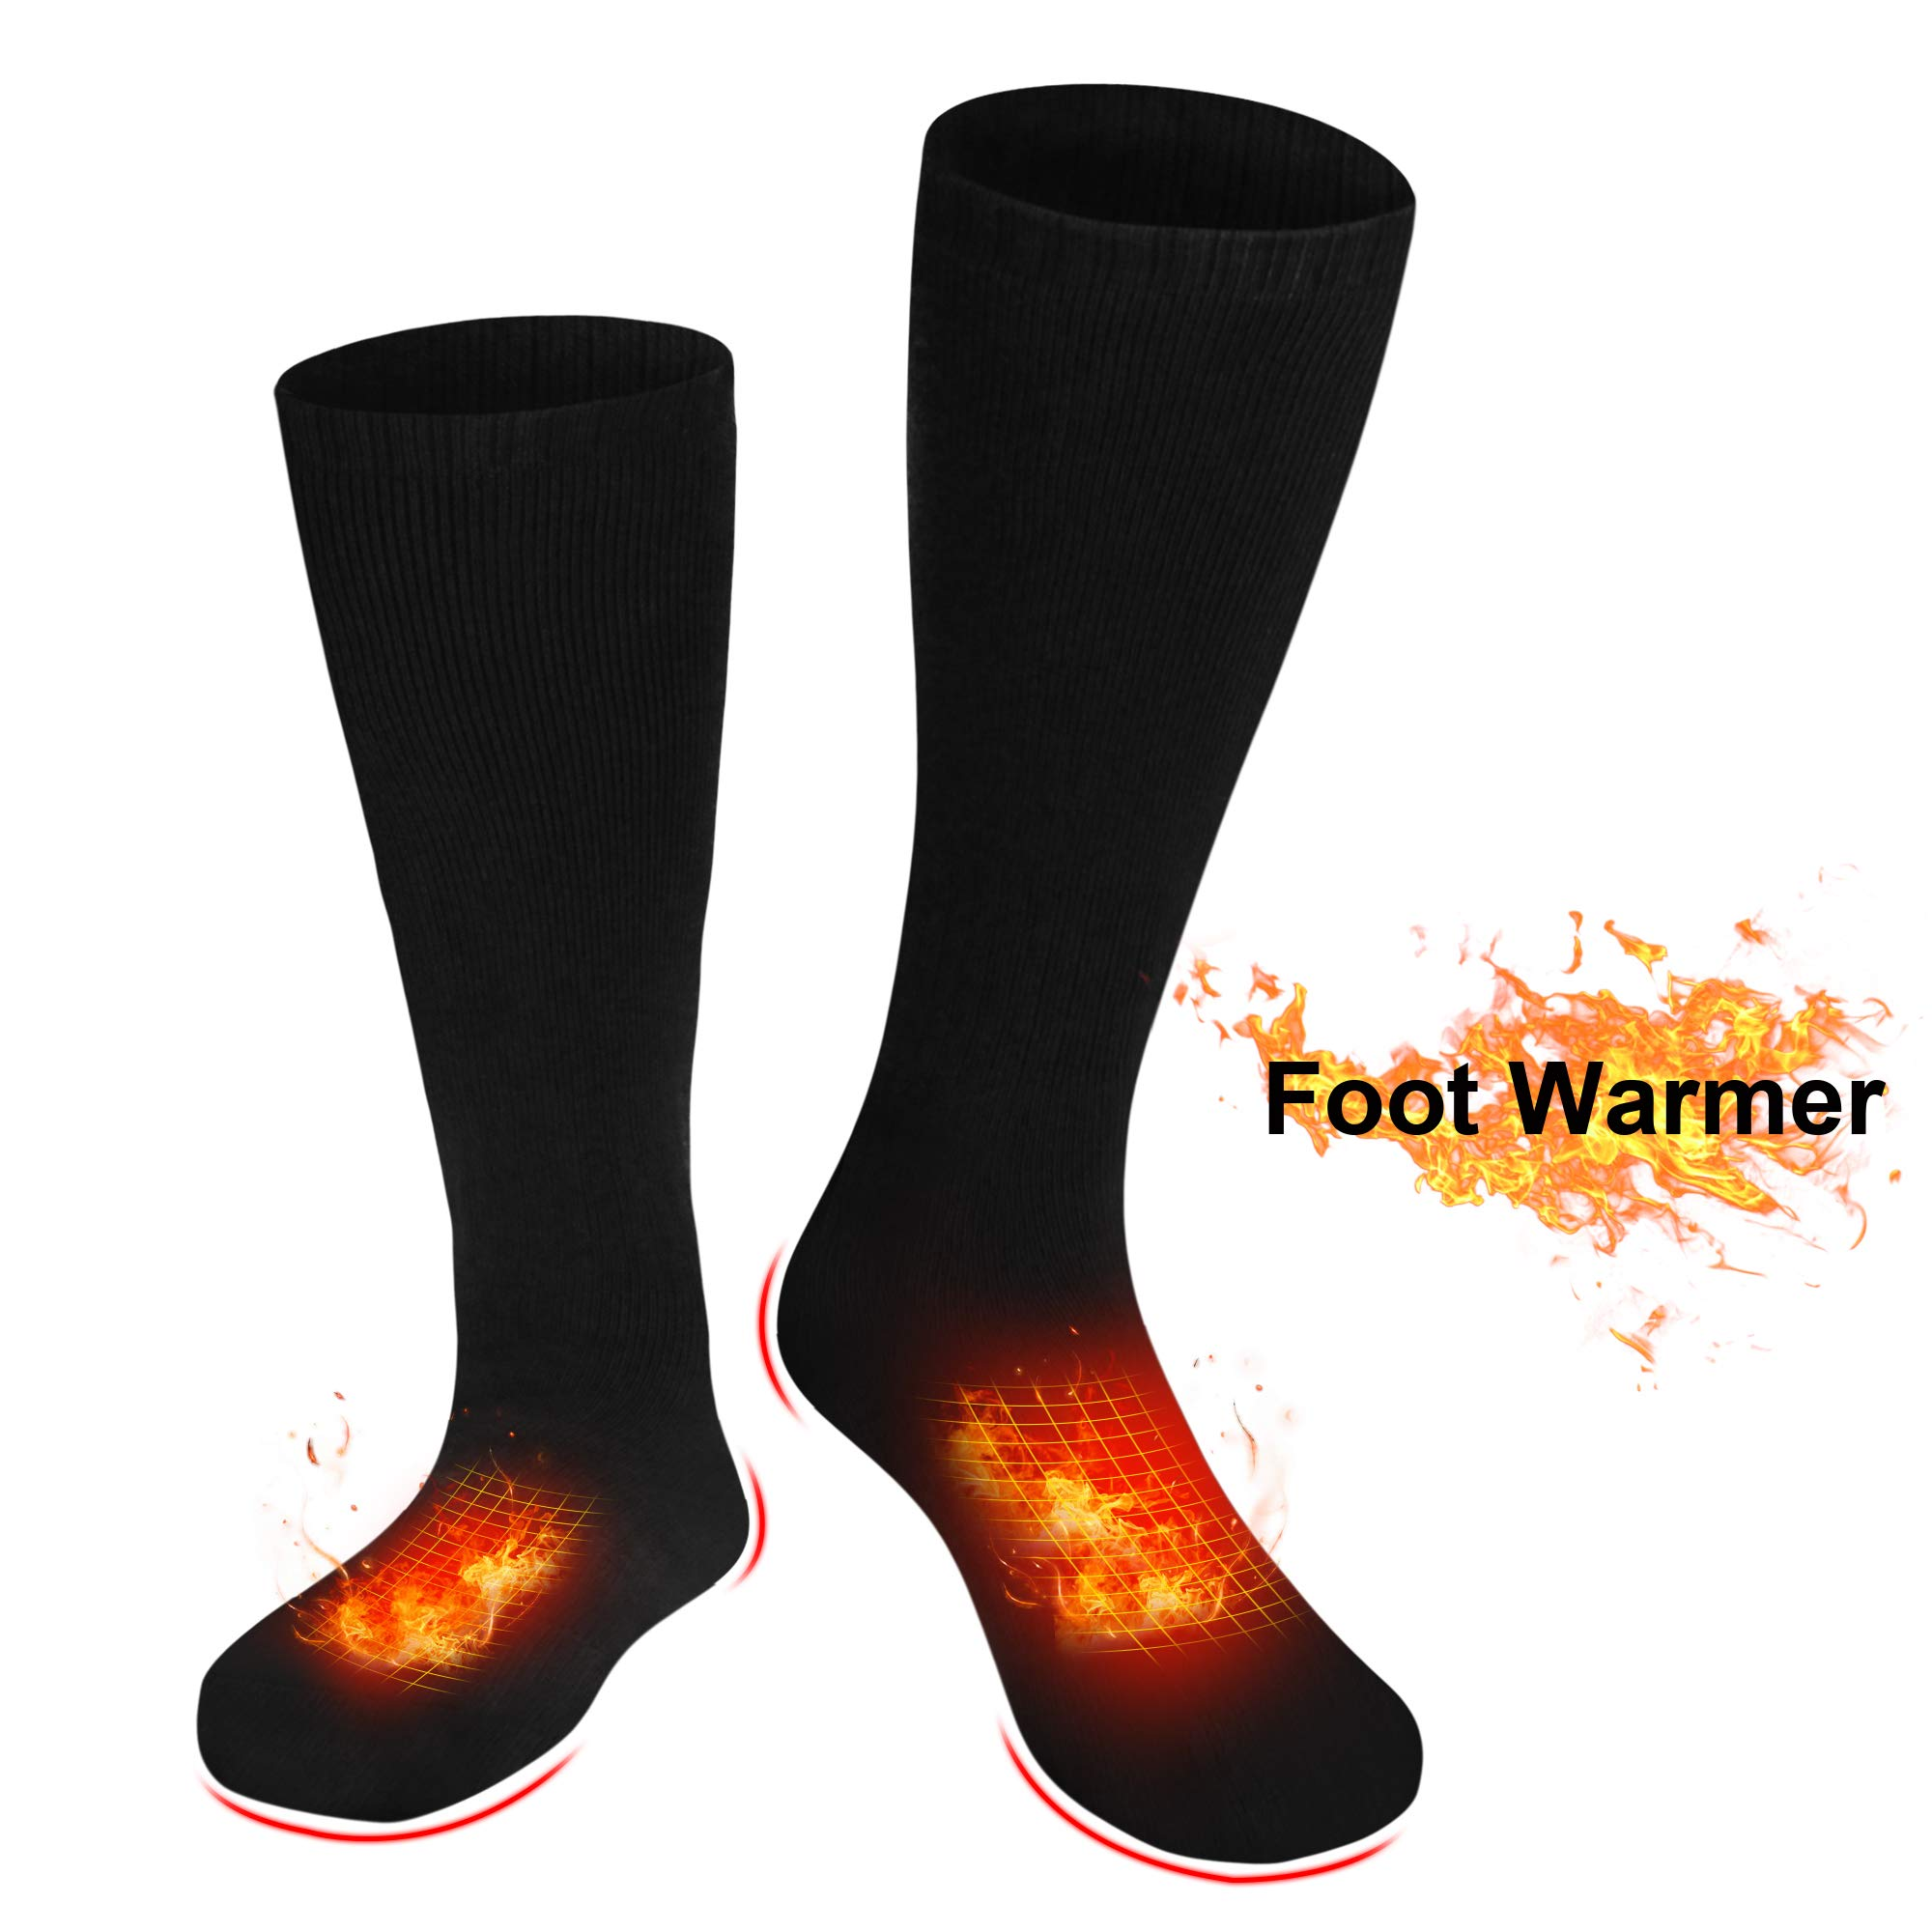 IFWATER Electric Heated Socks for Women Men, Rechargeable Electric Socks Battery Heated Socks Foot Warmer for Chronically Cold Foot, Skiing Hiking Warm Socks (Black, L) by IFWATER